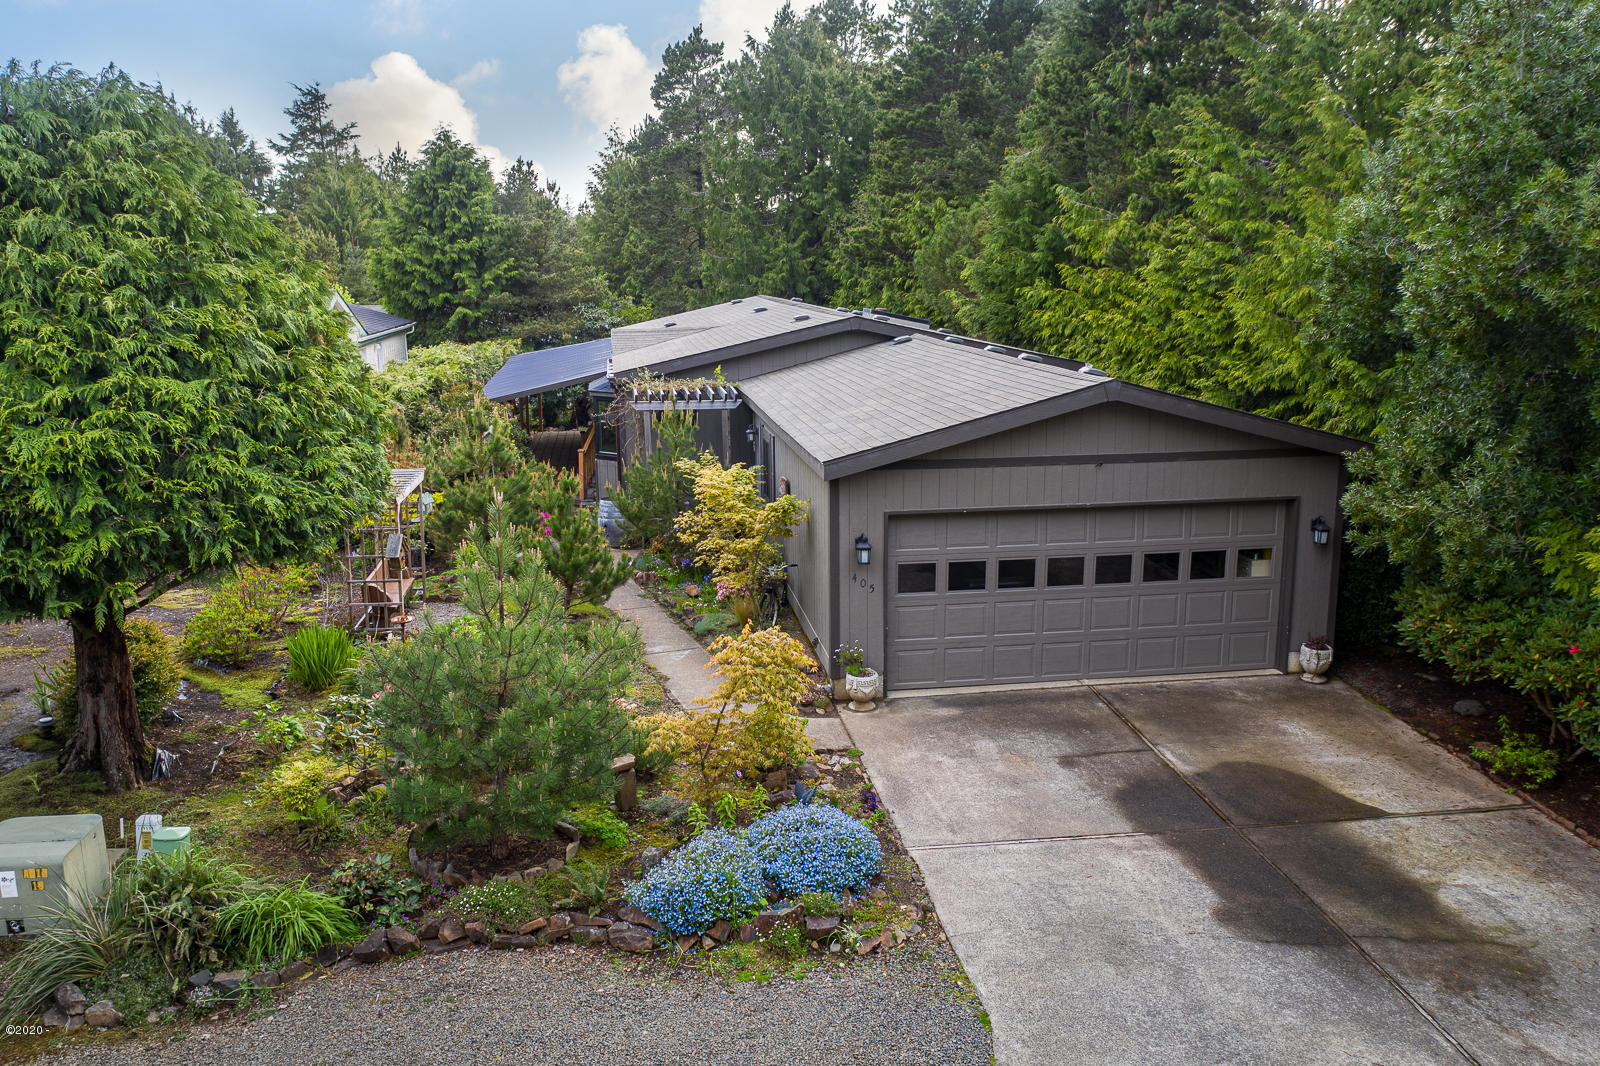 405 Seagrove Loop, Lincoln City, OR 97367 - 405SeaGrove-01